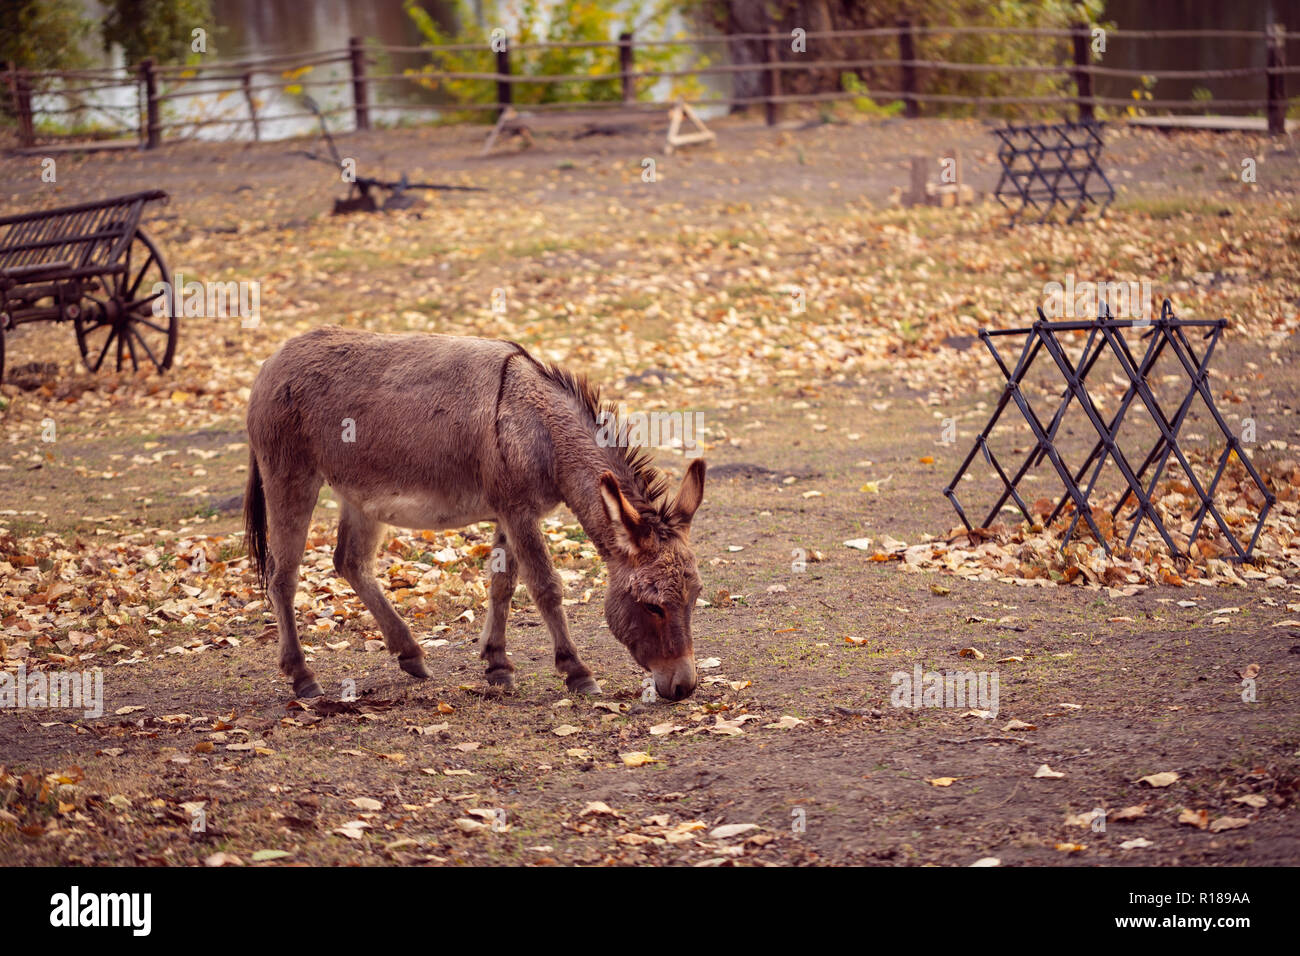 The brown donkey (domesticated member of the horse family) is eating Stock Photo